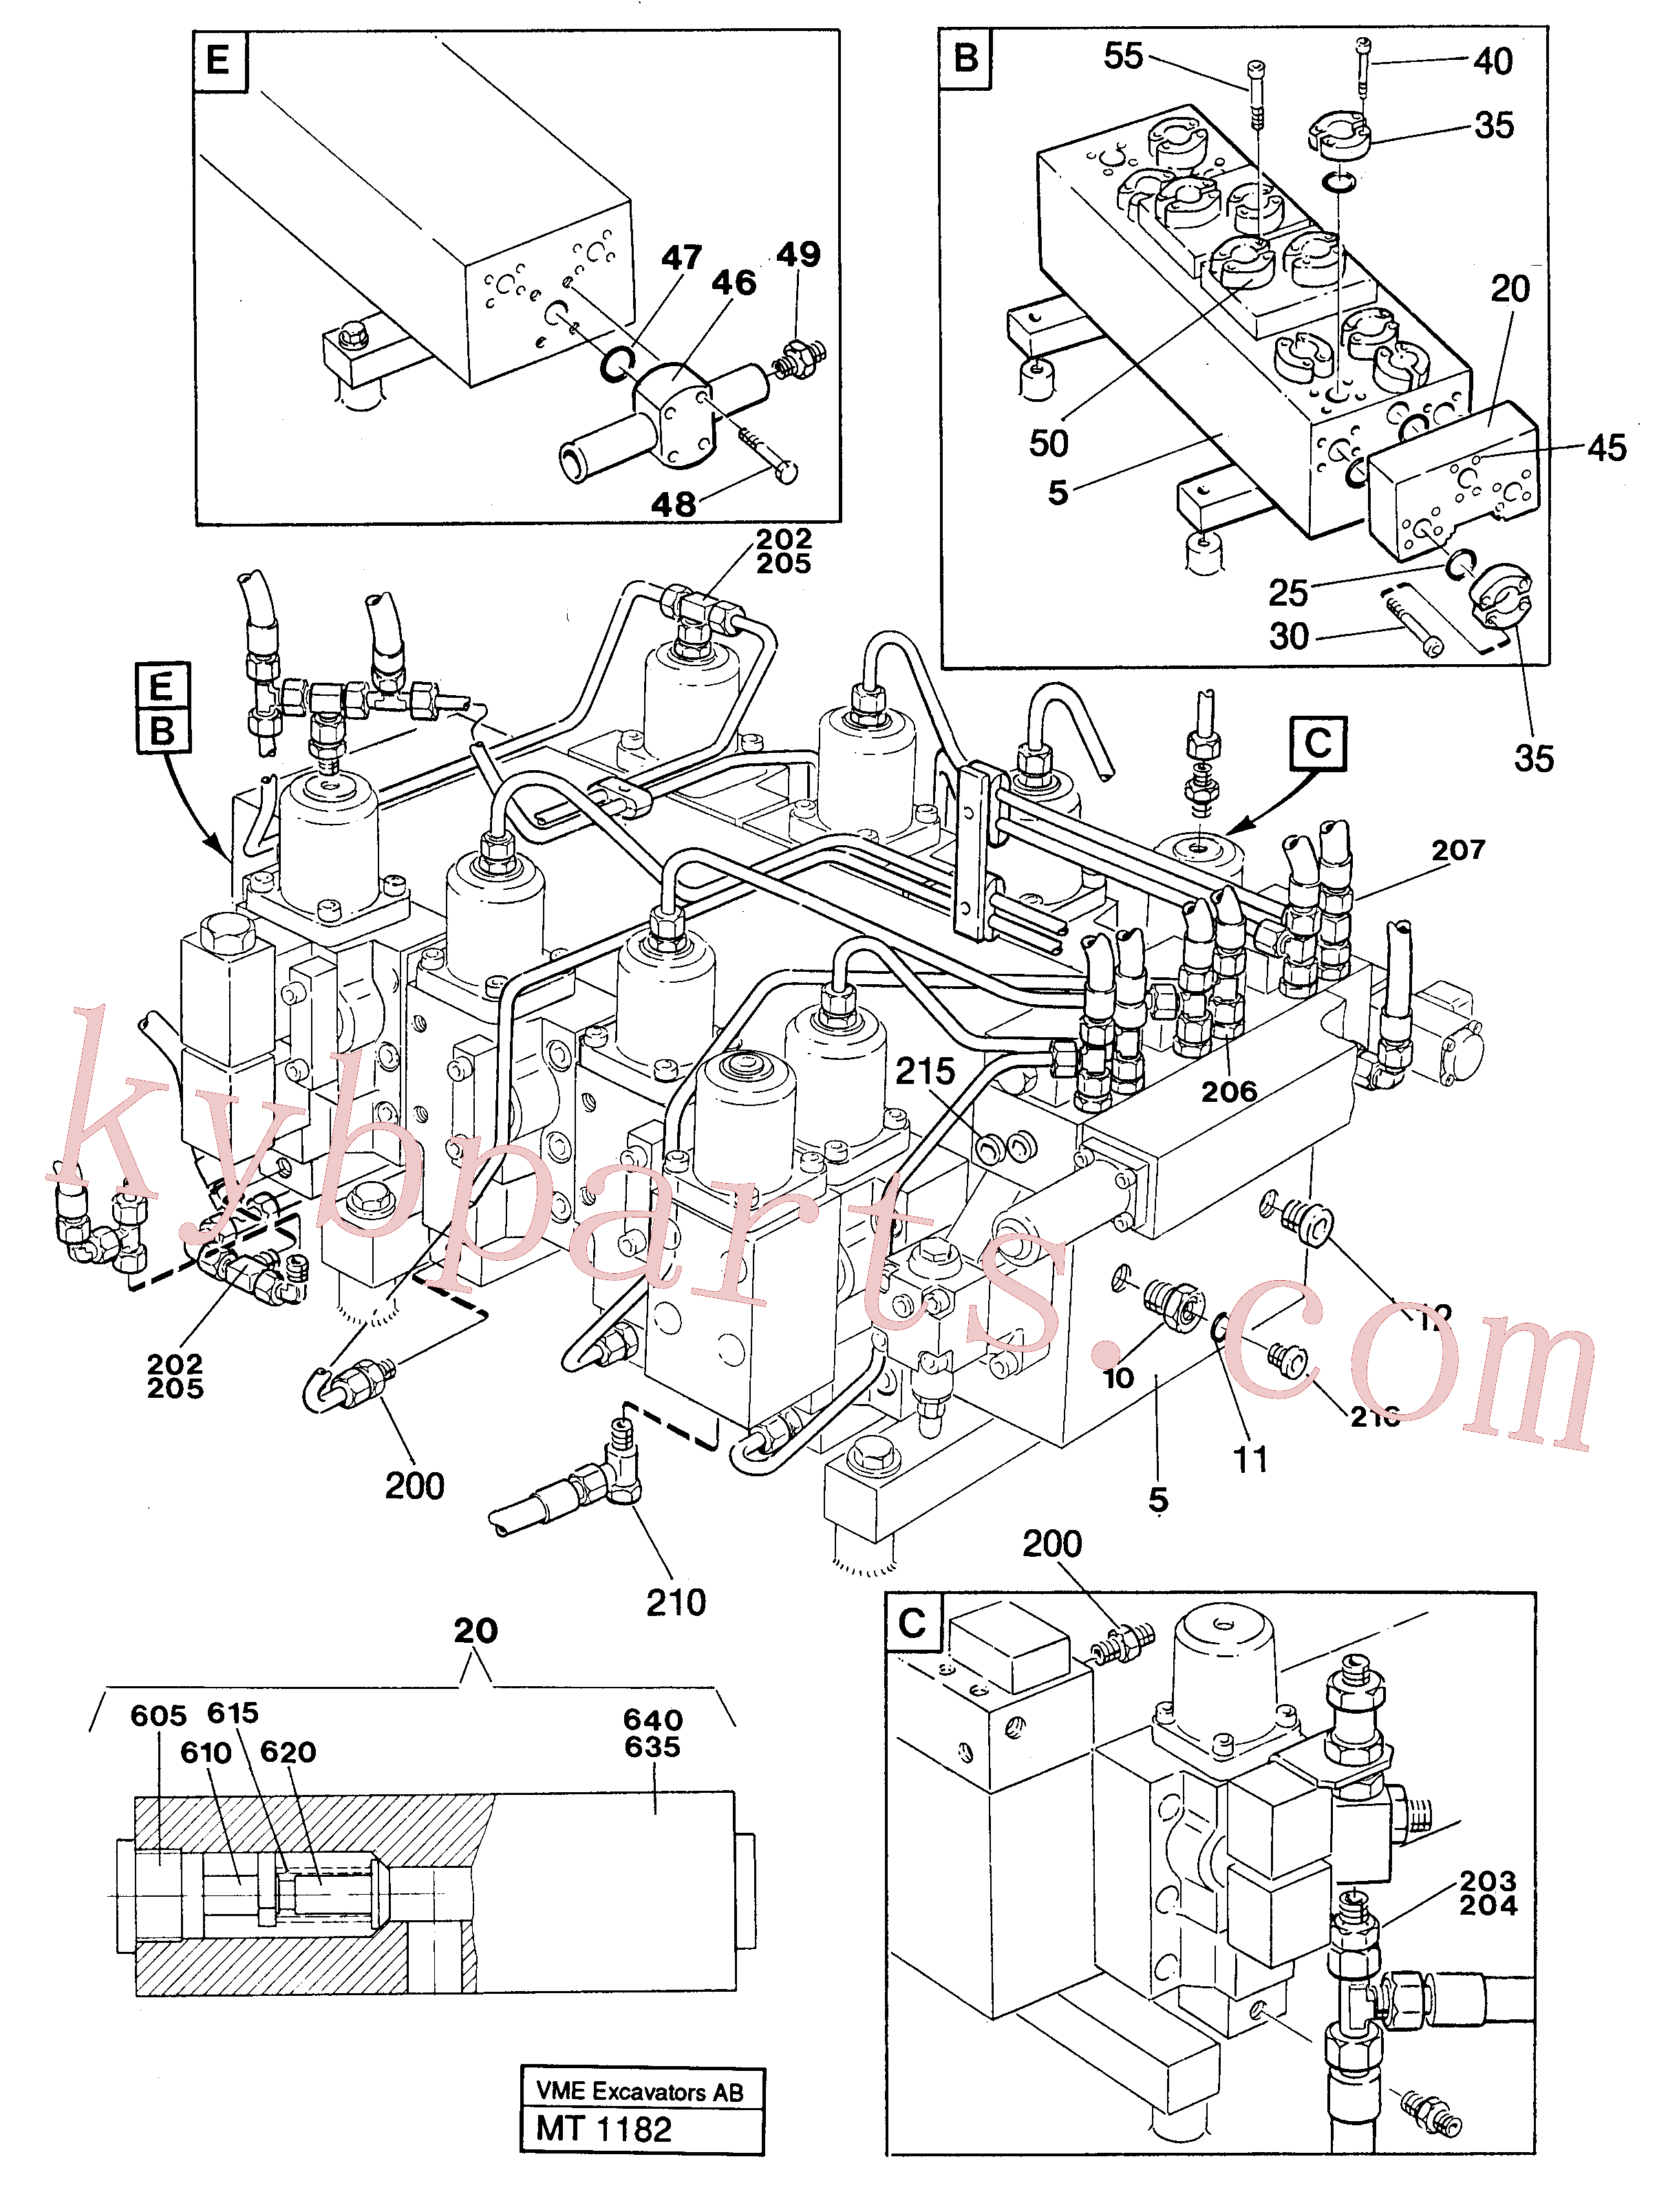 VOE14256455 for Volvo Main valve assembly with connections(MT1182 assembly)